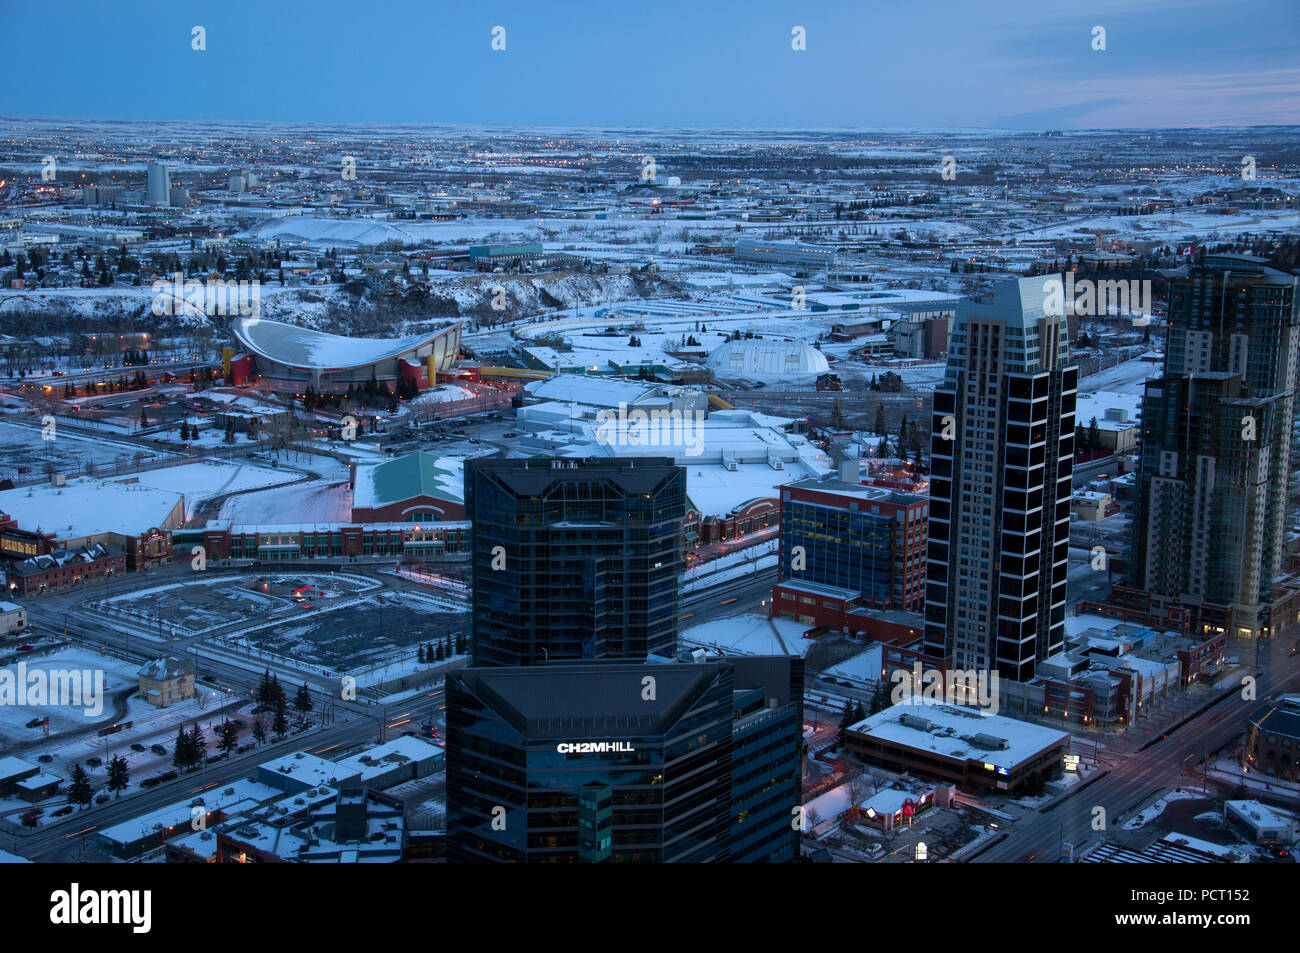 Calgary Saddledome and Stampede Grounds in the winter of 2010. - Stock Image